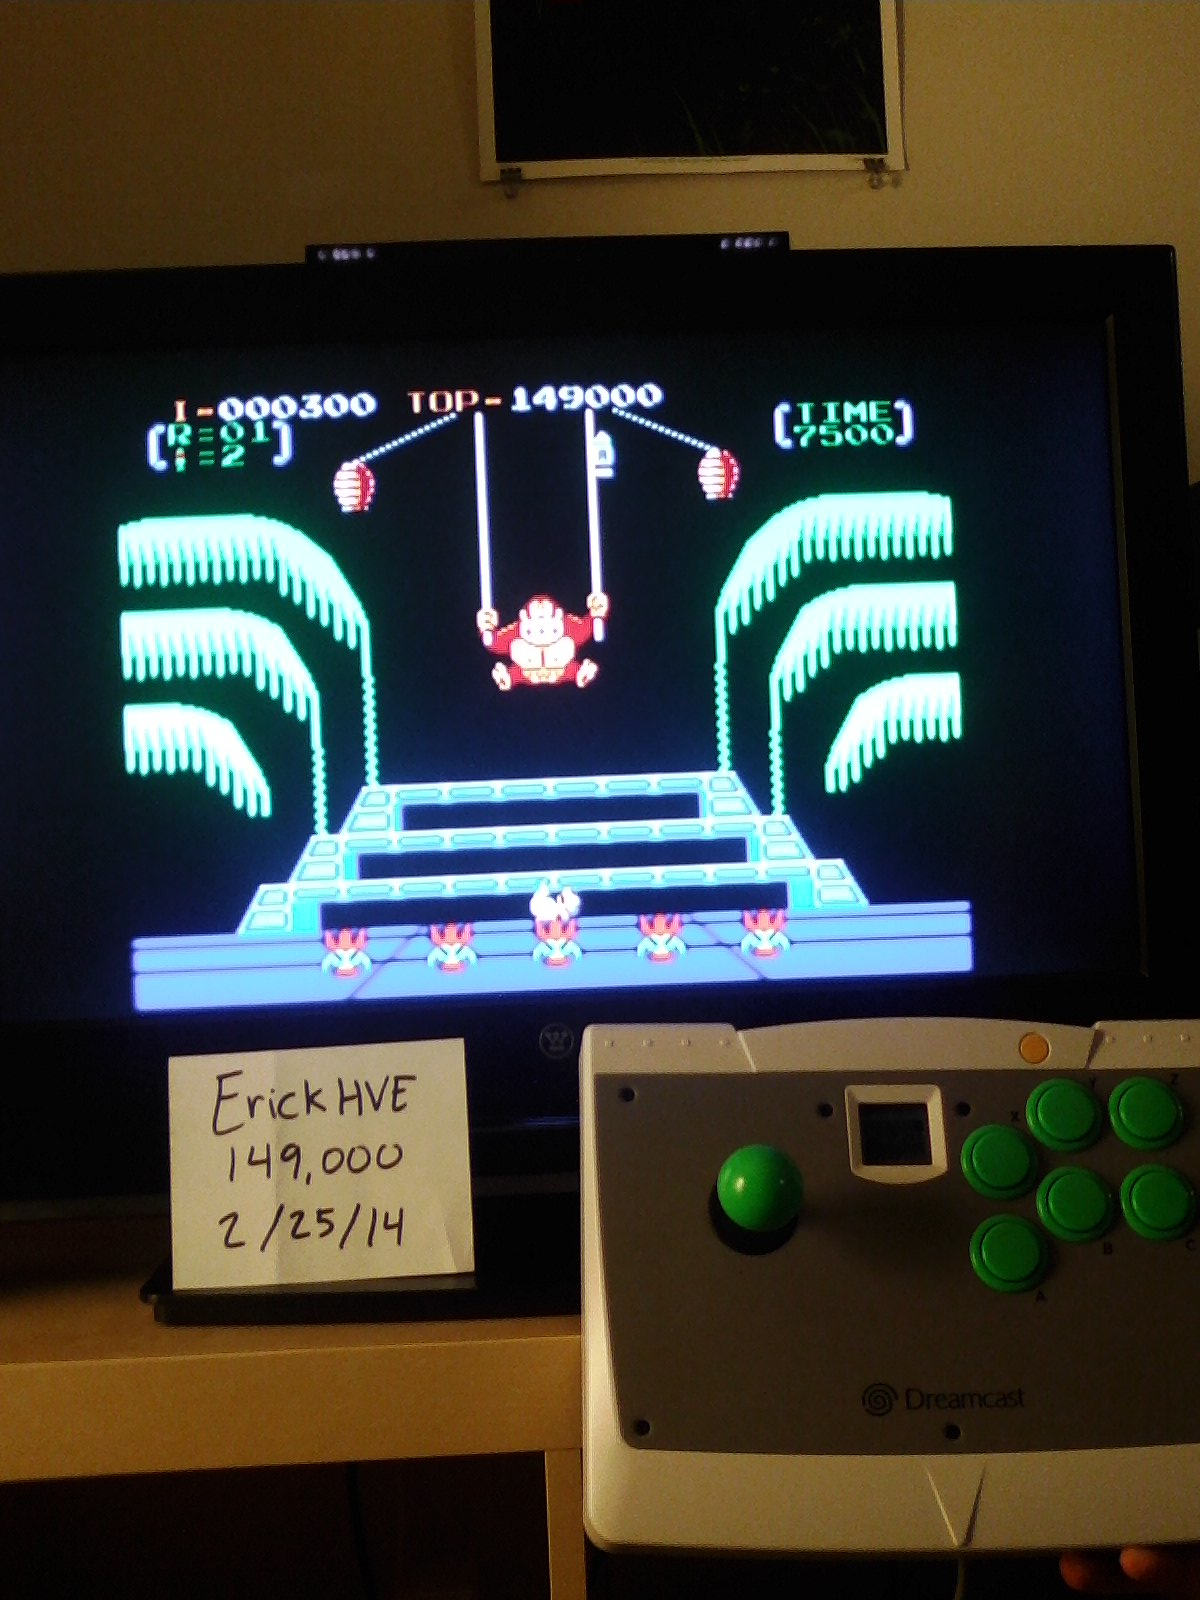 Donkey Kong 3: Game A 149,000 points